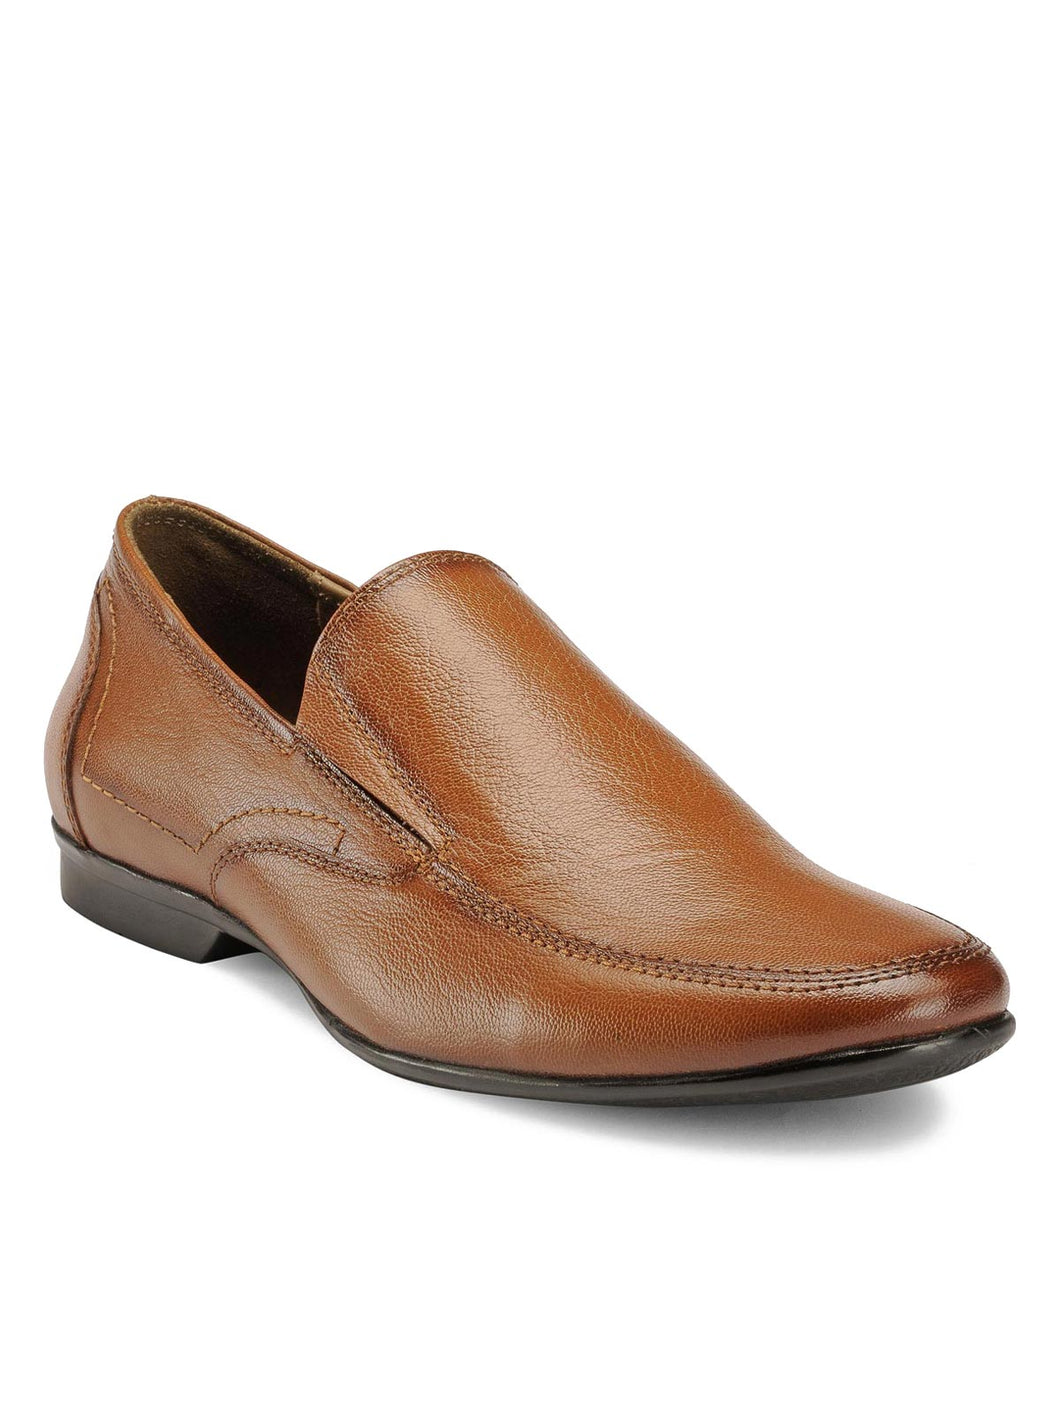 Teakwood Genuine Leather slip-ons shoes